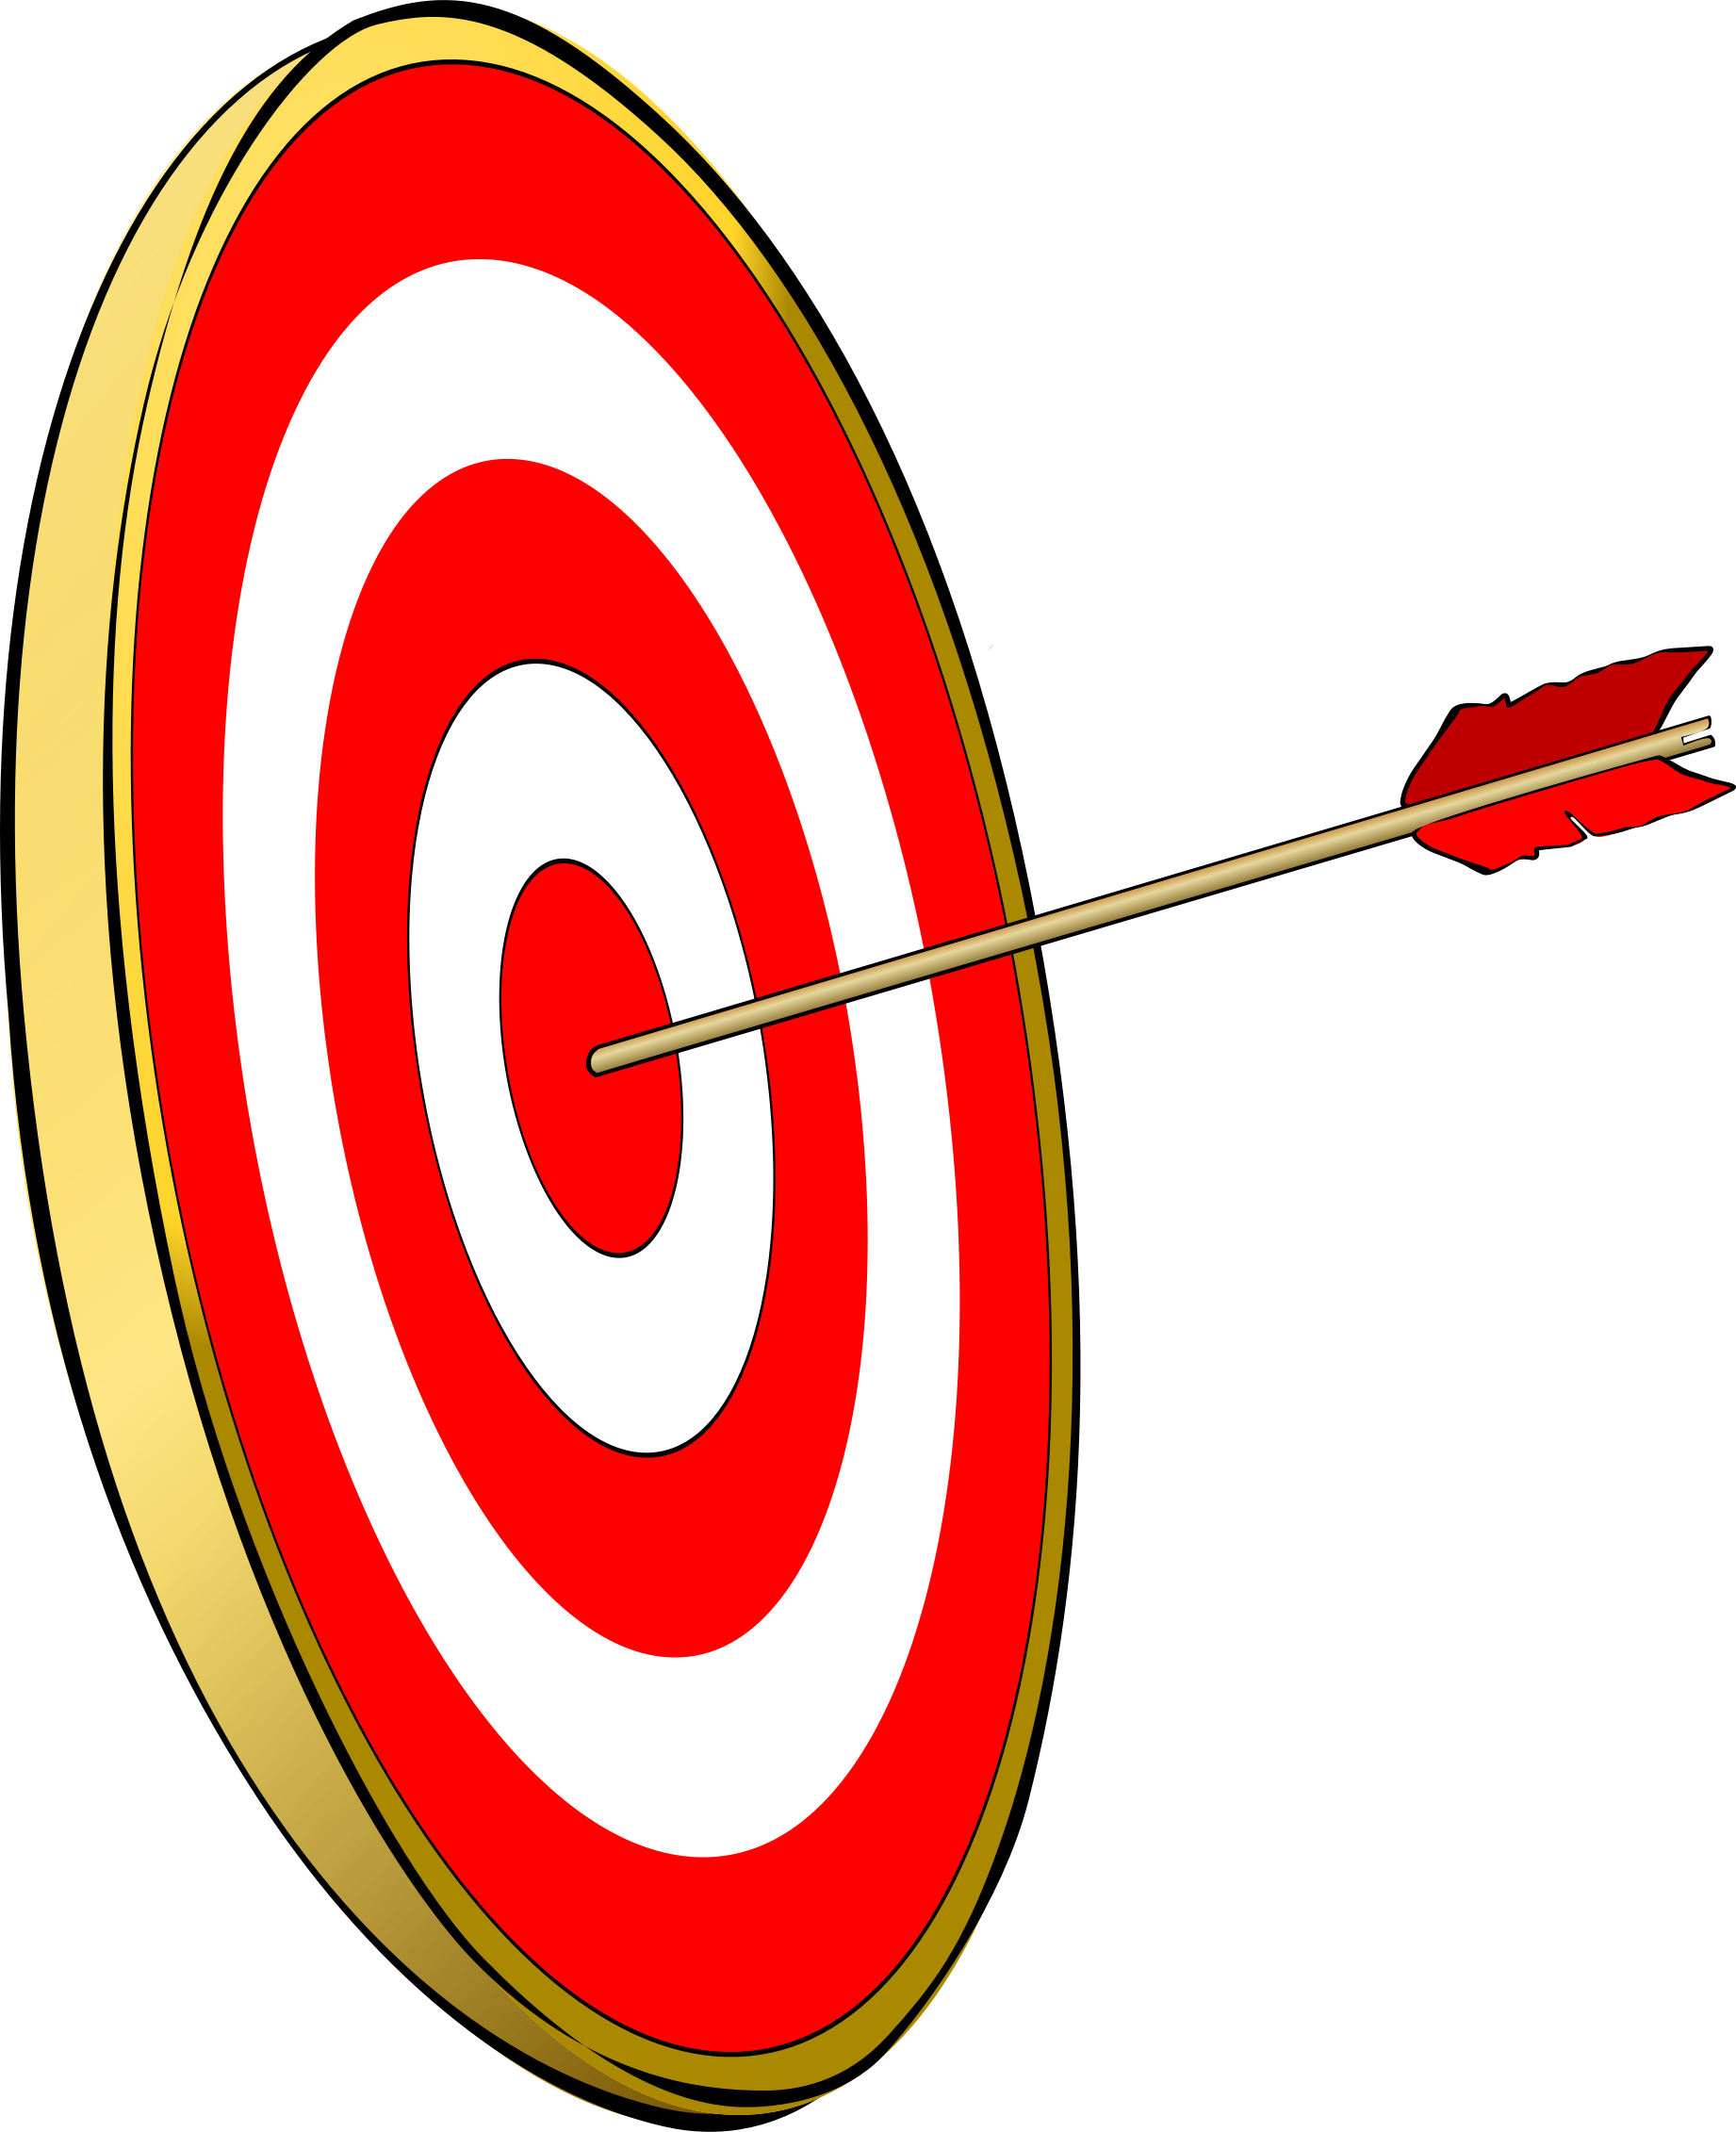 Missions clipart target. Bullseye by amcolley an